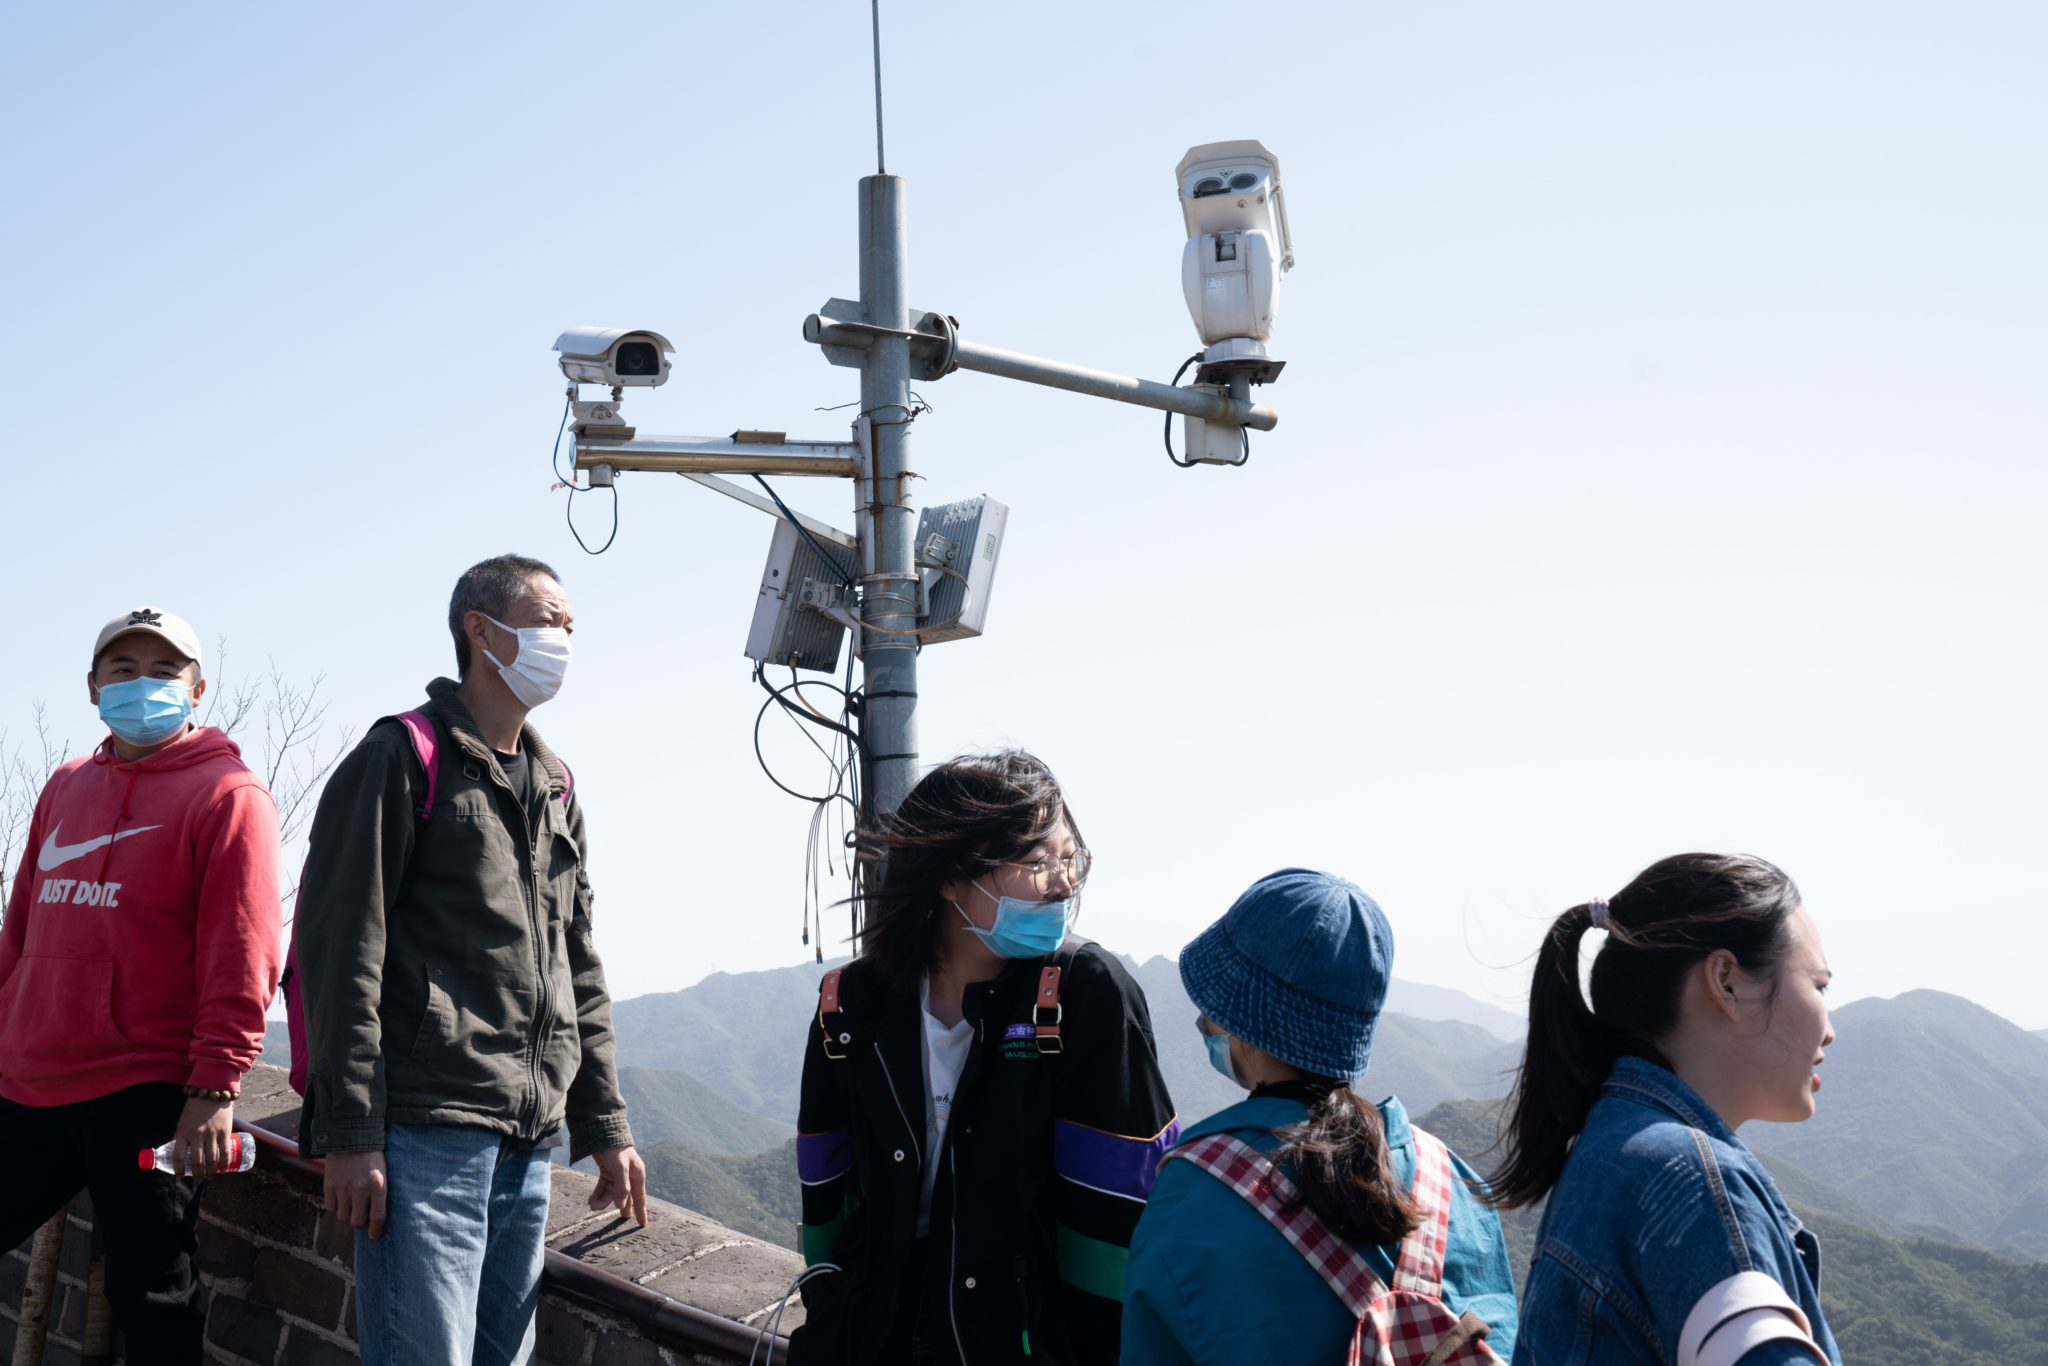 Visitors stand near surveillance cameras at the Badaling section of the Great Wall in Beijing, China, on Oct. 1, 2020.